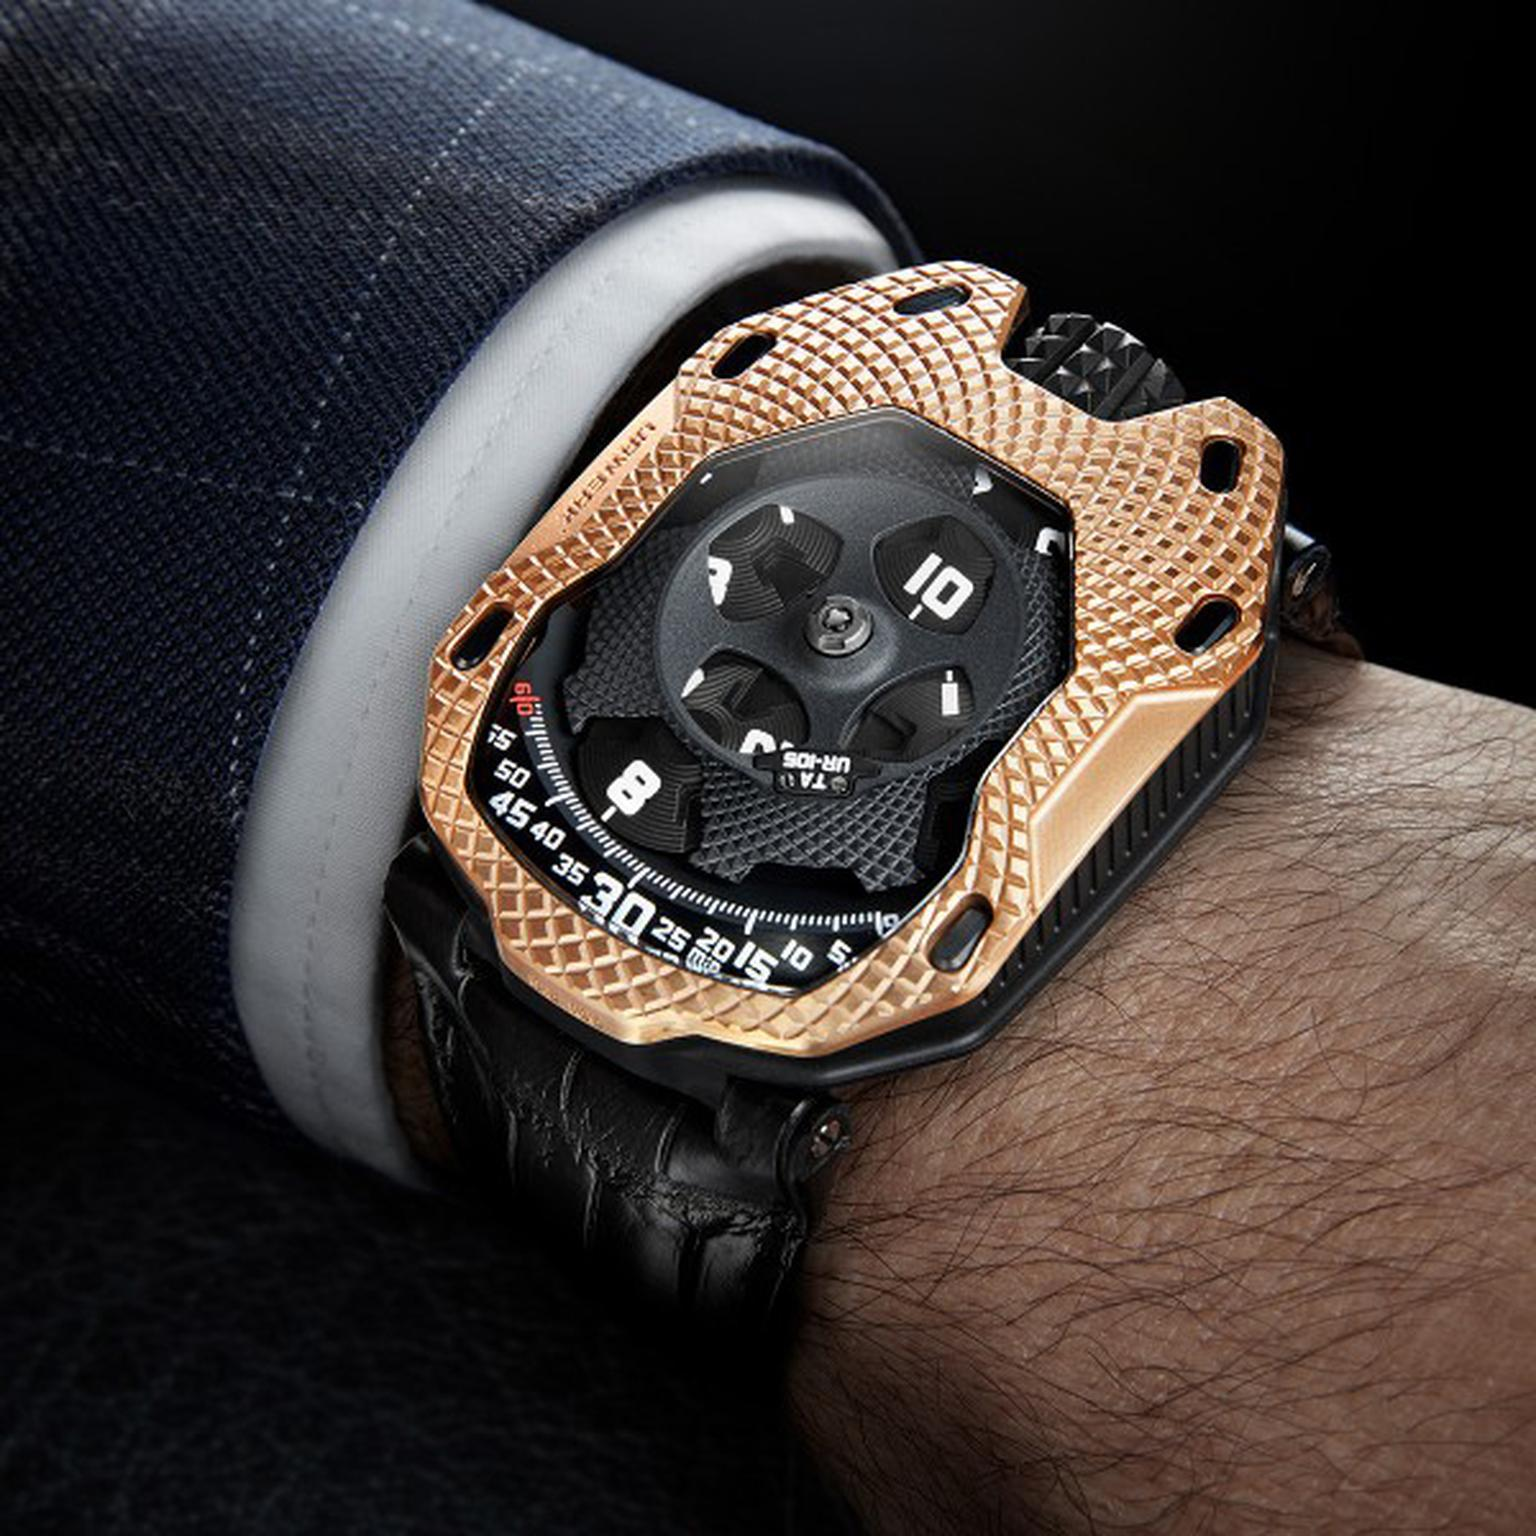 Urwerk UR-105 Raging Gold watch